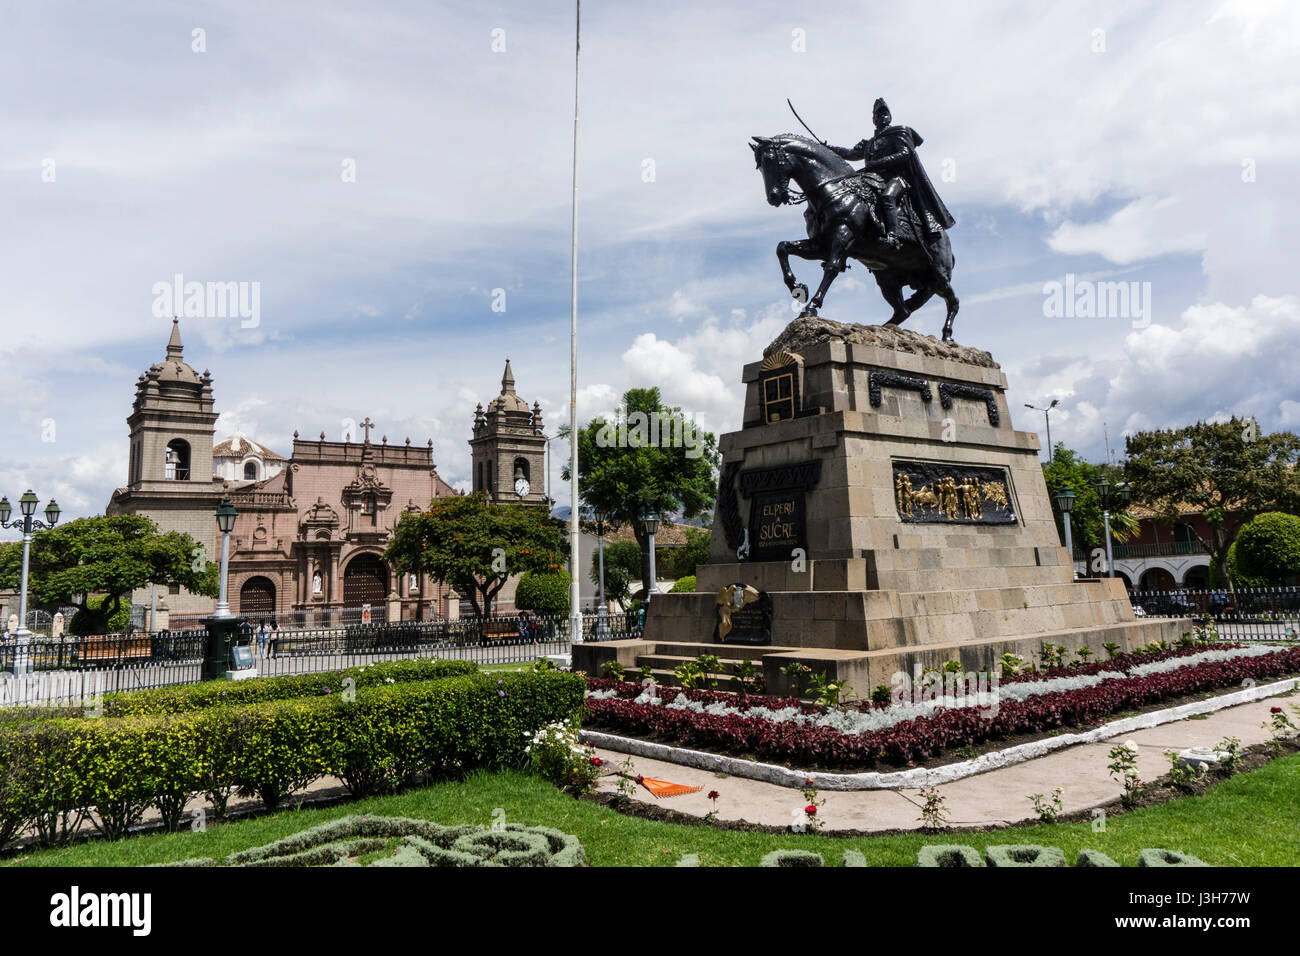 Plaza de Armas of Ayacucho city and the Monument to General San Martín, Peru. Stock Photo